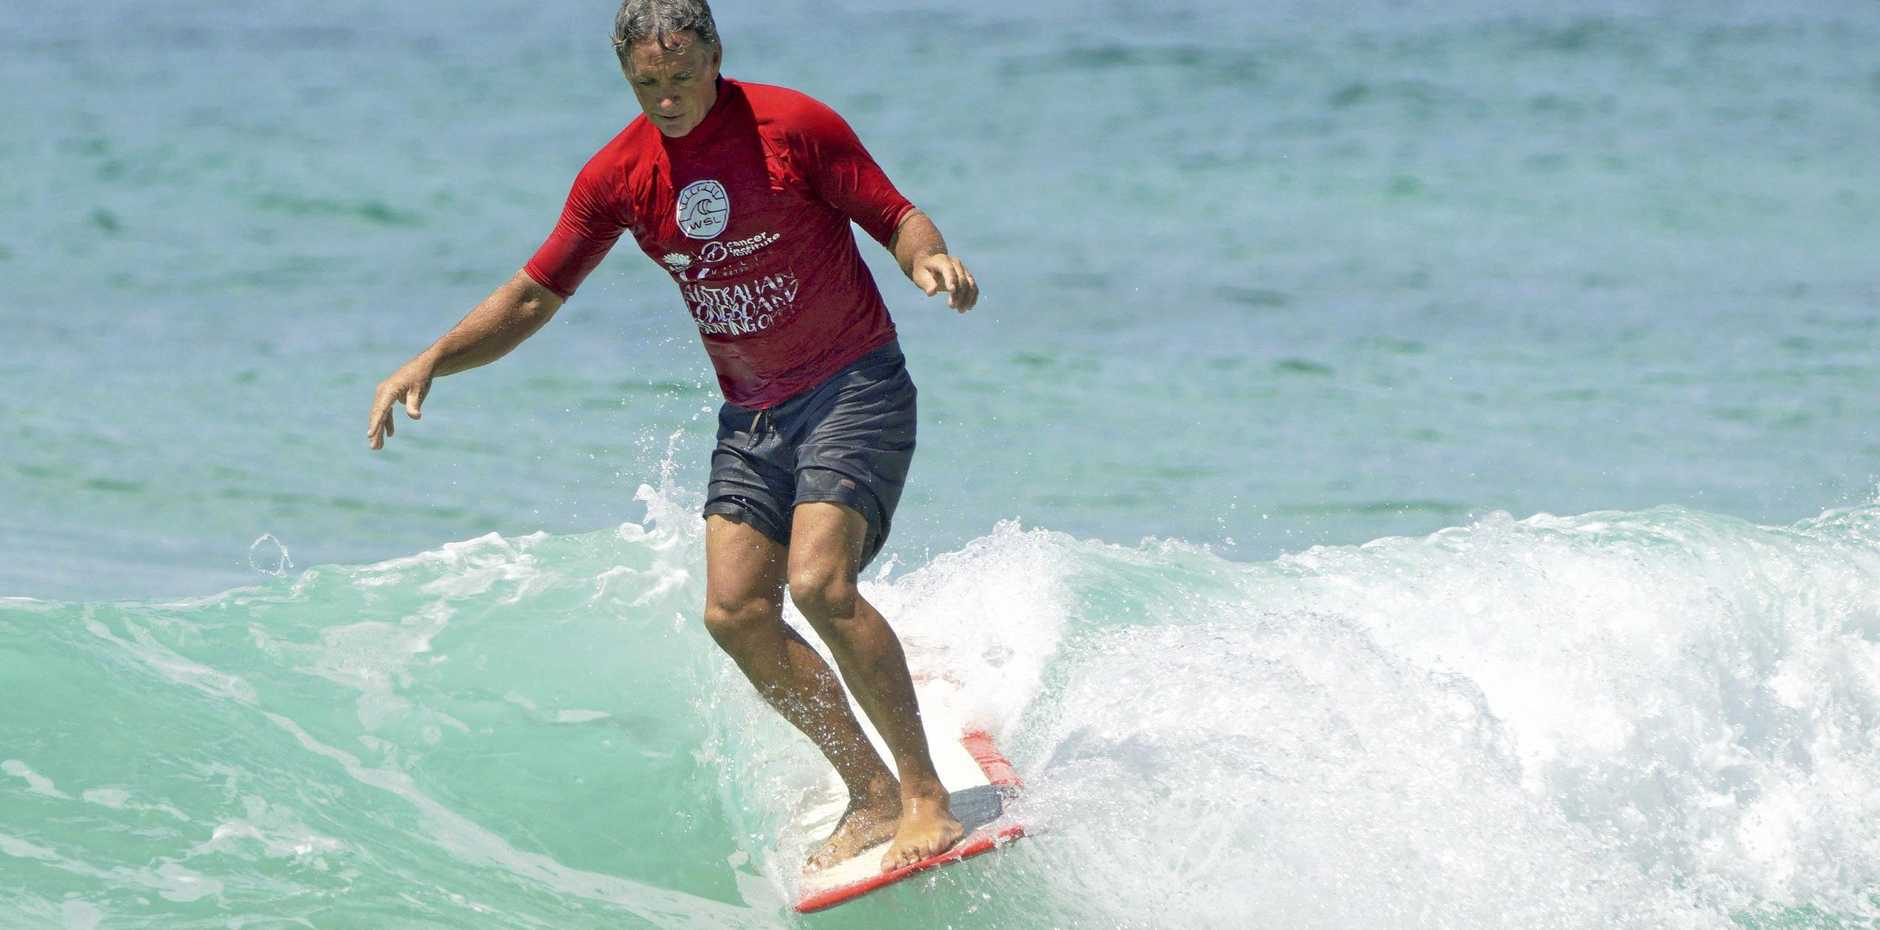 Ray Gleave at the Australian Longboard Surf Open.